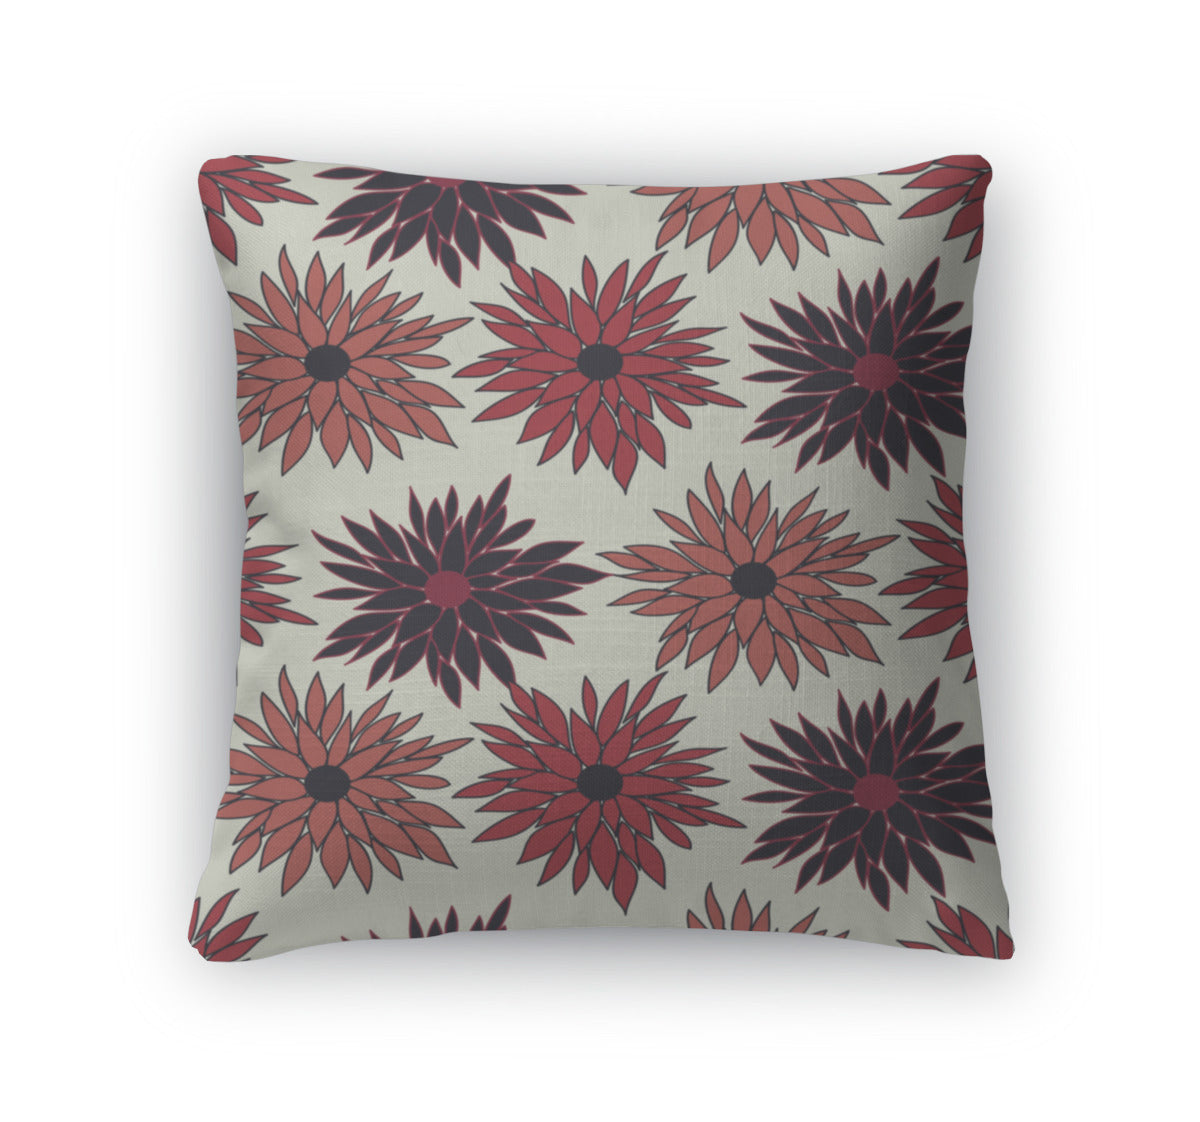 Throw Pillow, Floral Pattern With Chrysanthemum - fashionbests